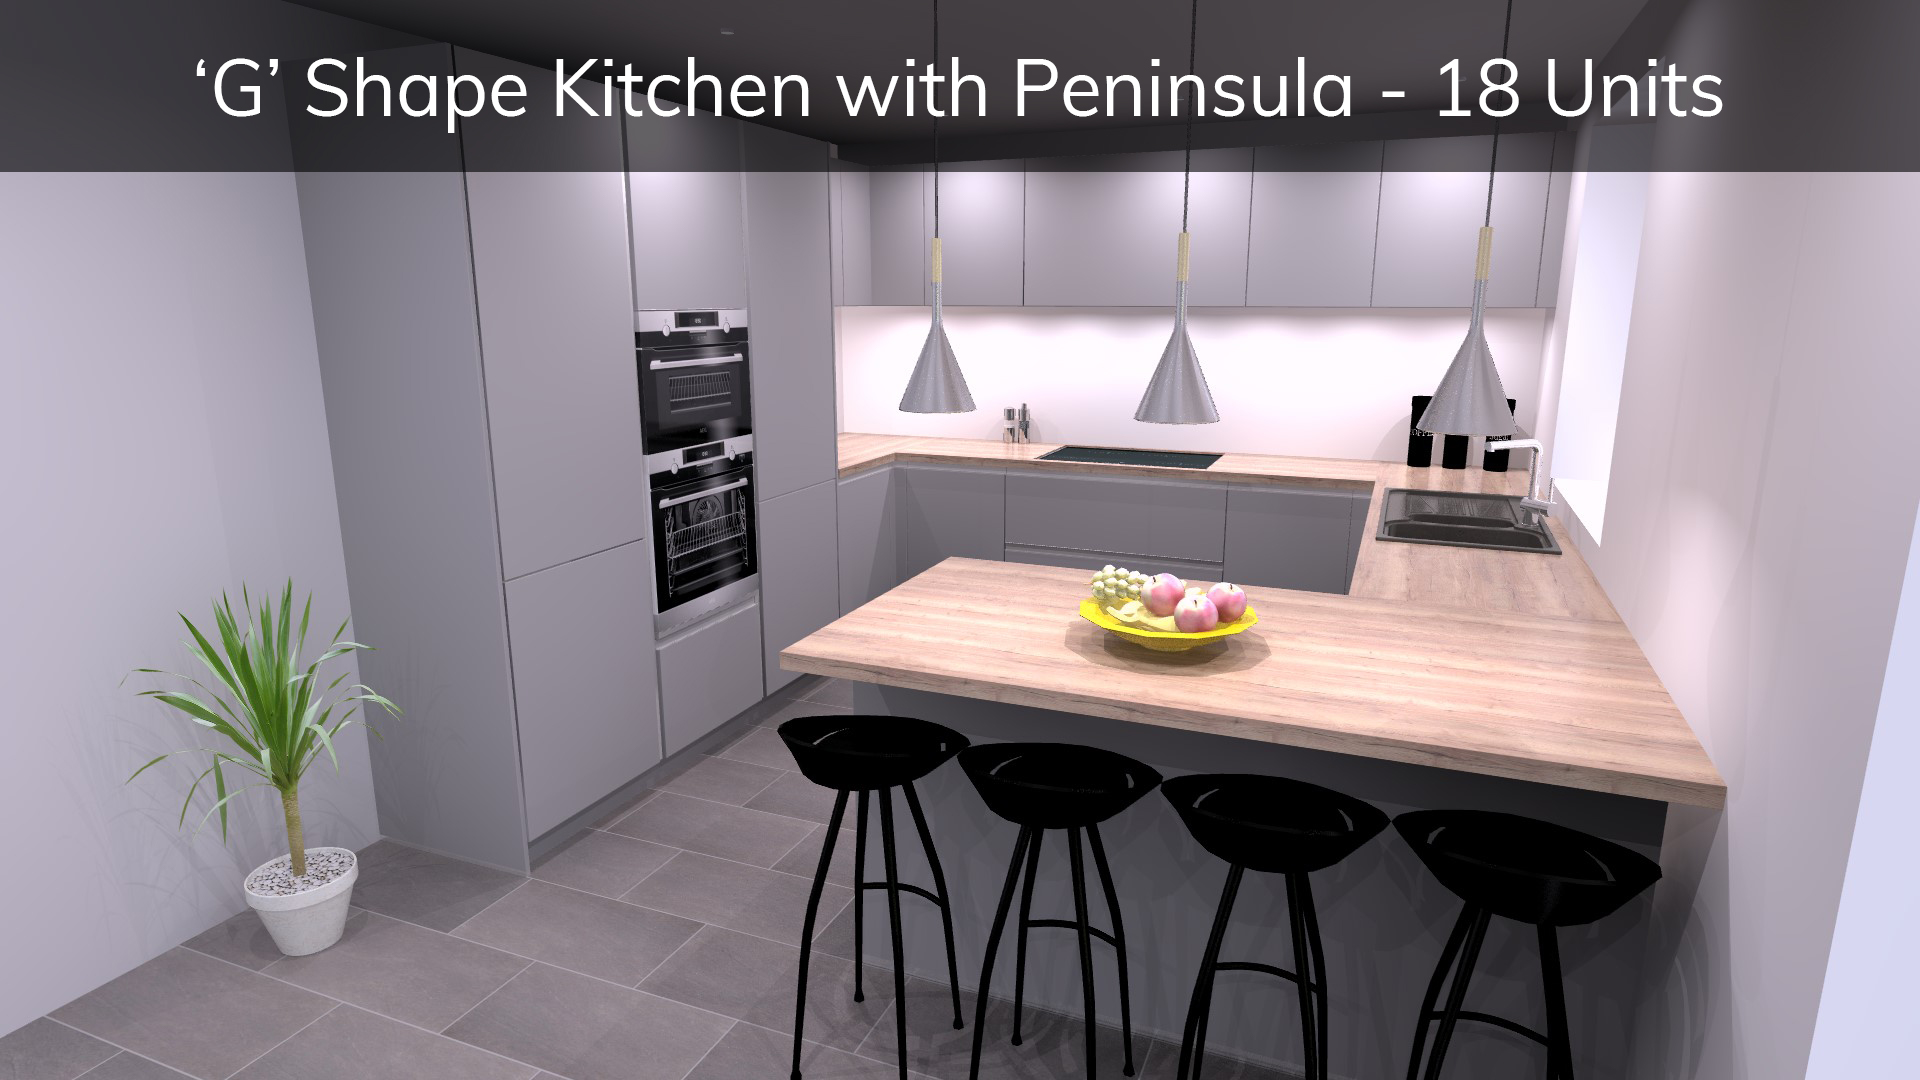 G shape kitchen with peninsula breakfast bar - german kitchen price guide - how much does a schuller kitchen cost